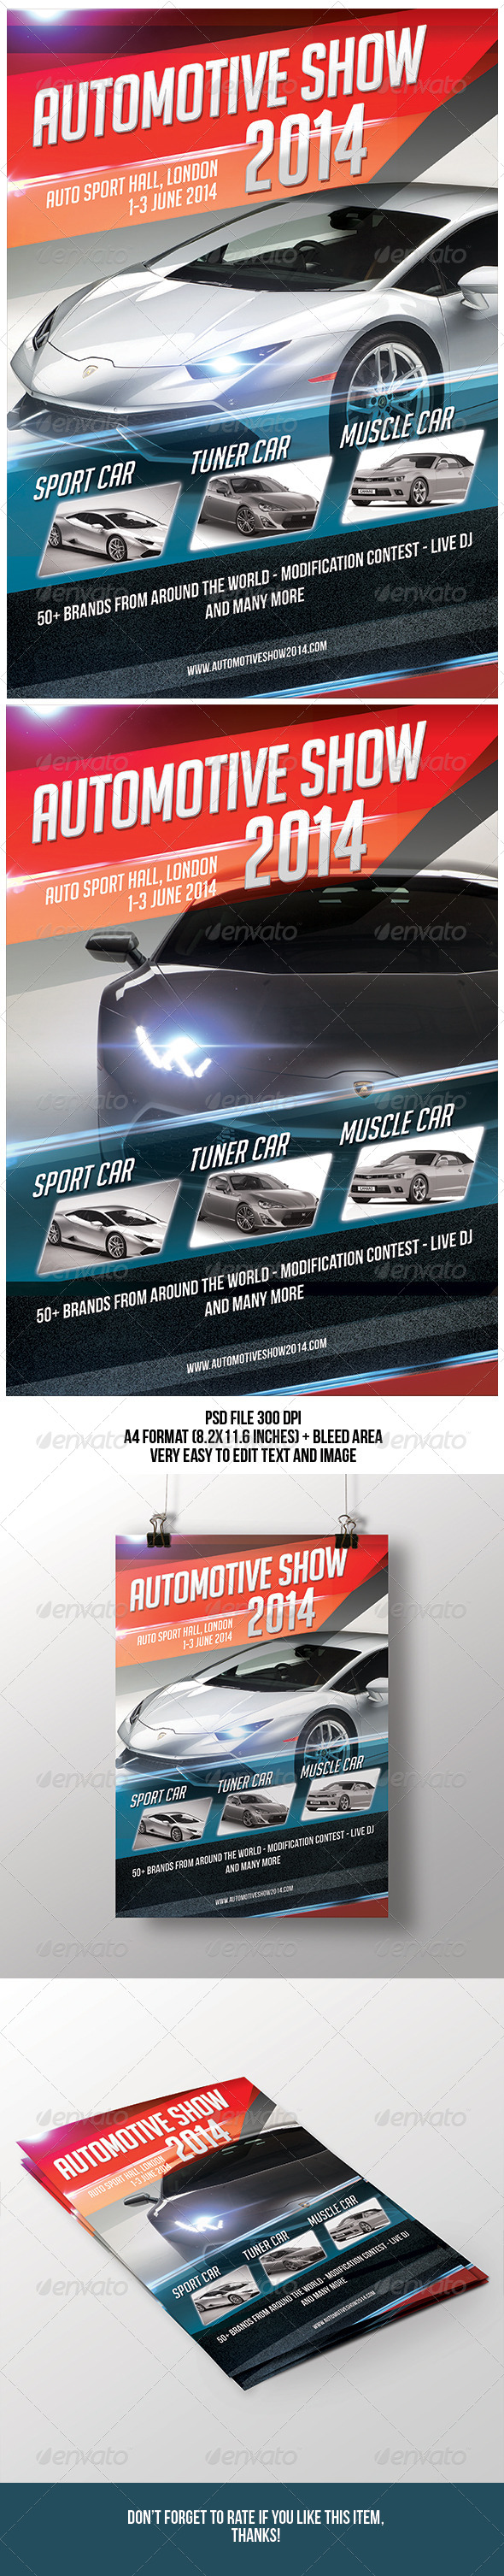 Automotive Show Flyer - Miscellaneous Events